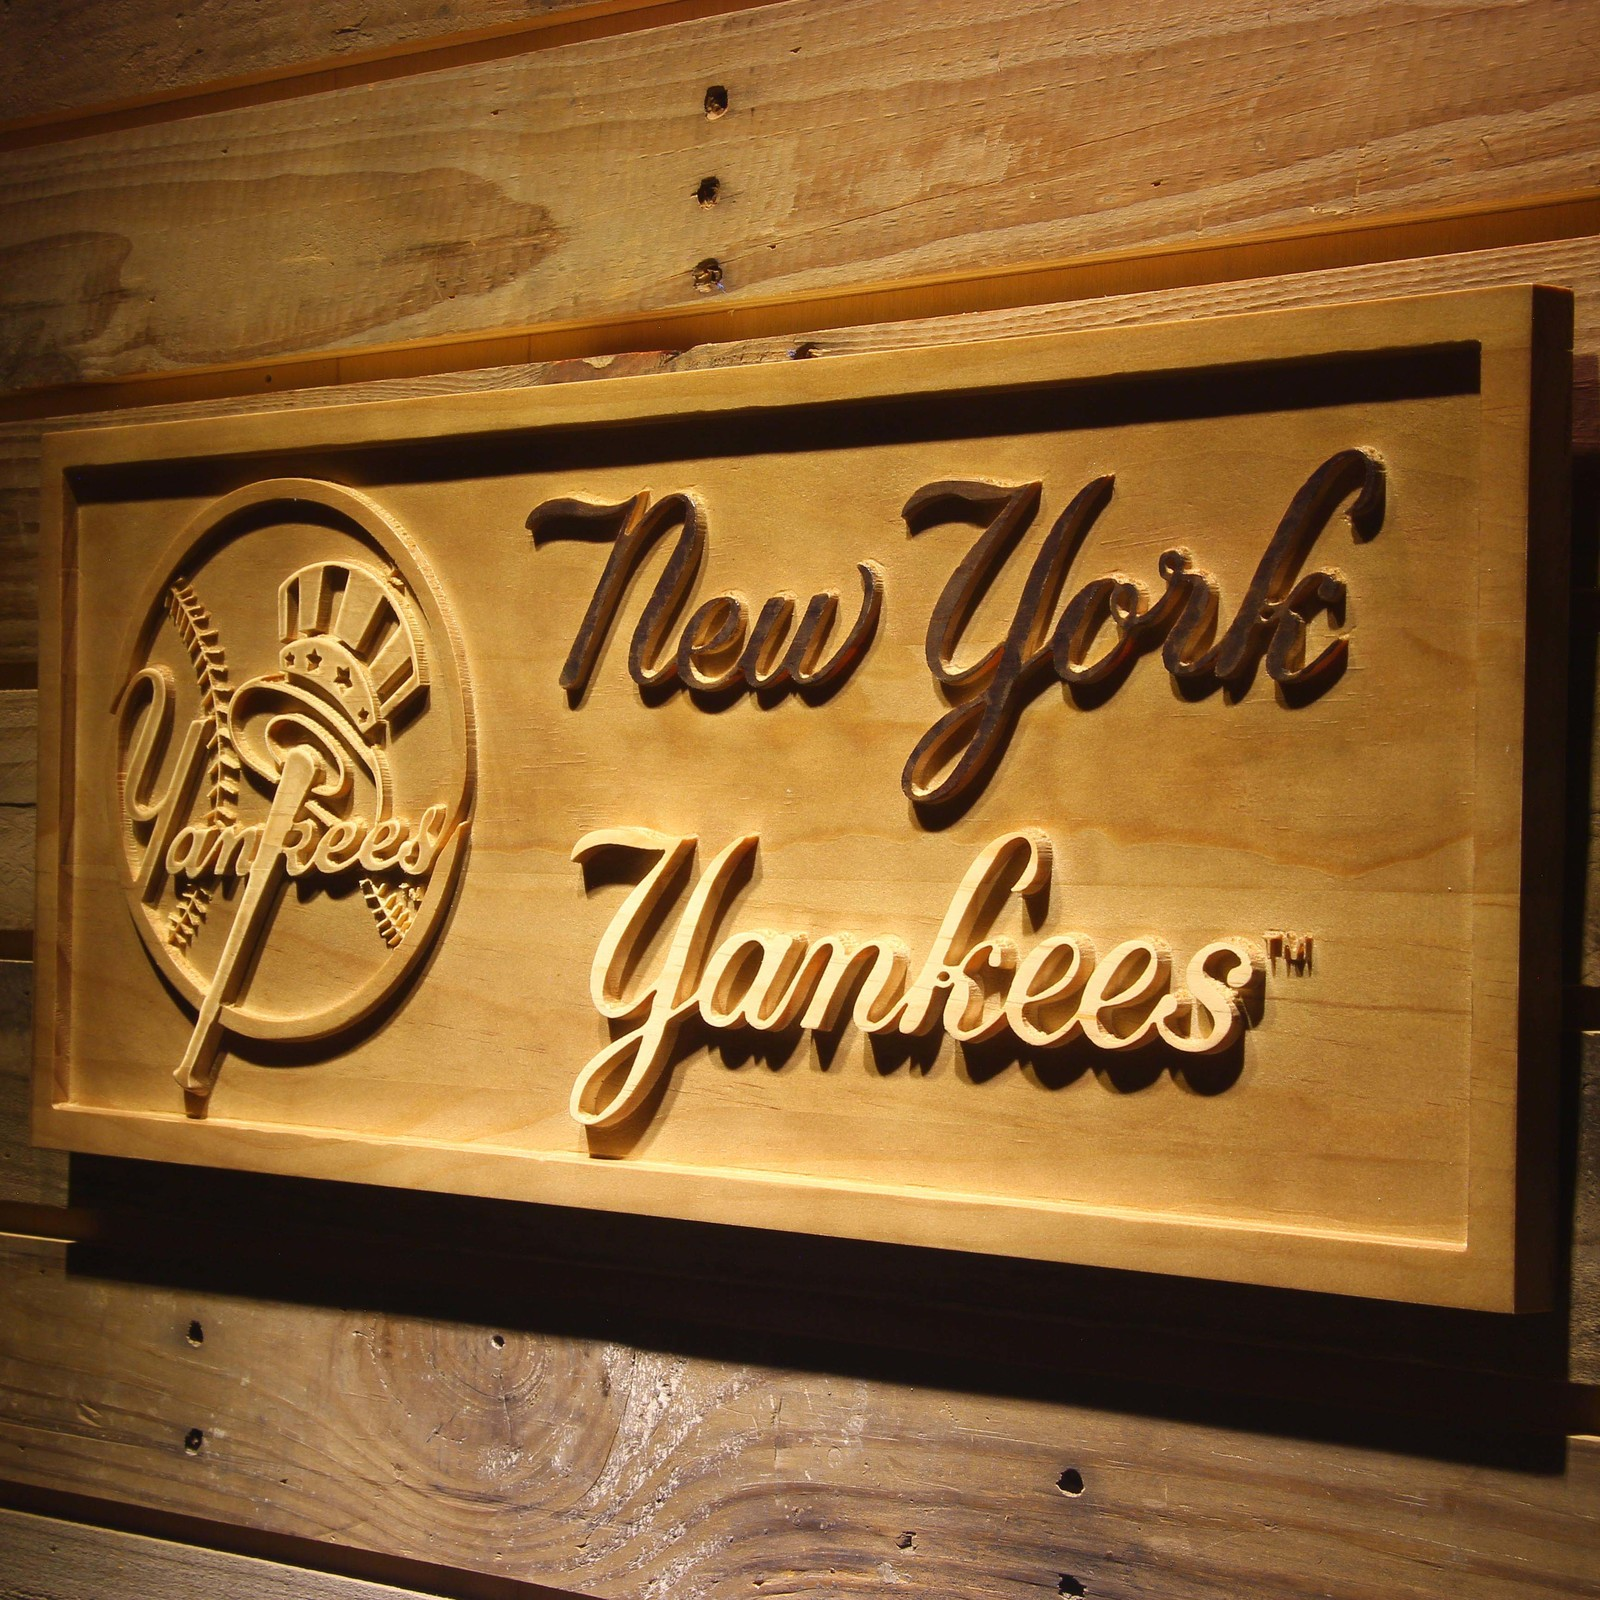 New York Yankees Home Decor: New York Yankees MLB Baseball Team Wooden Sign Wall Art